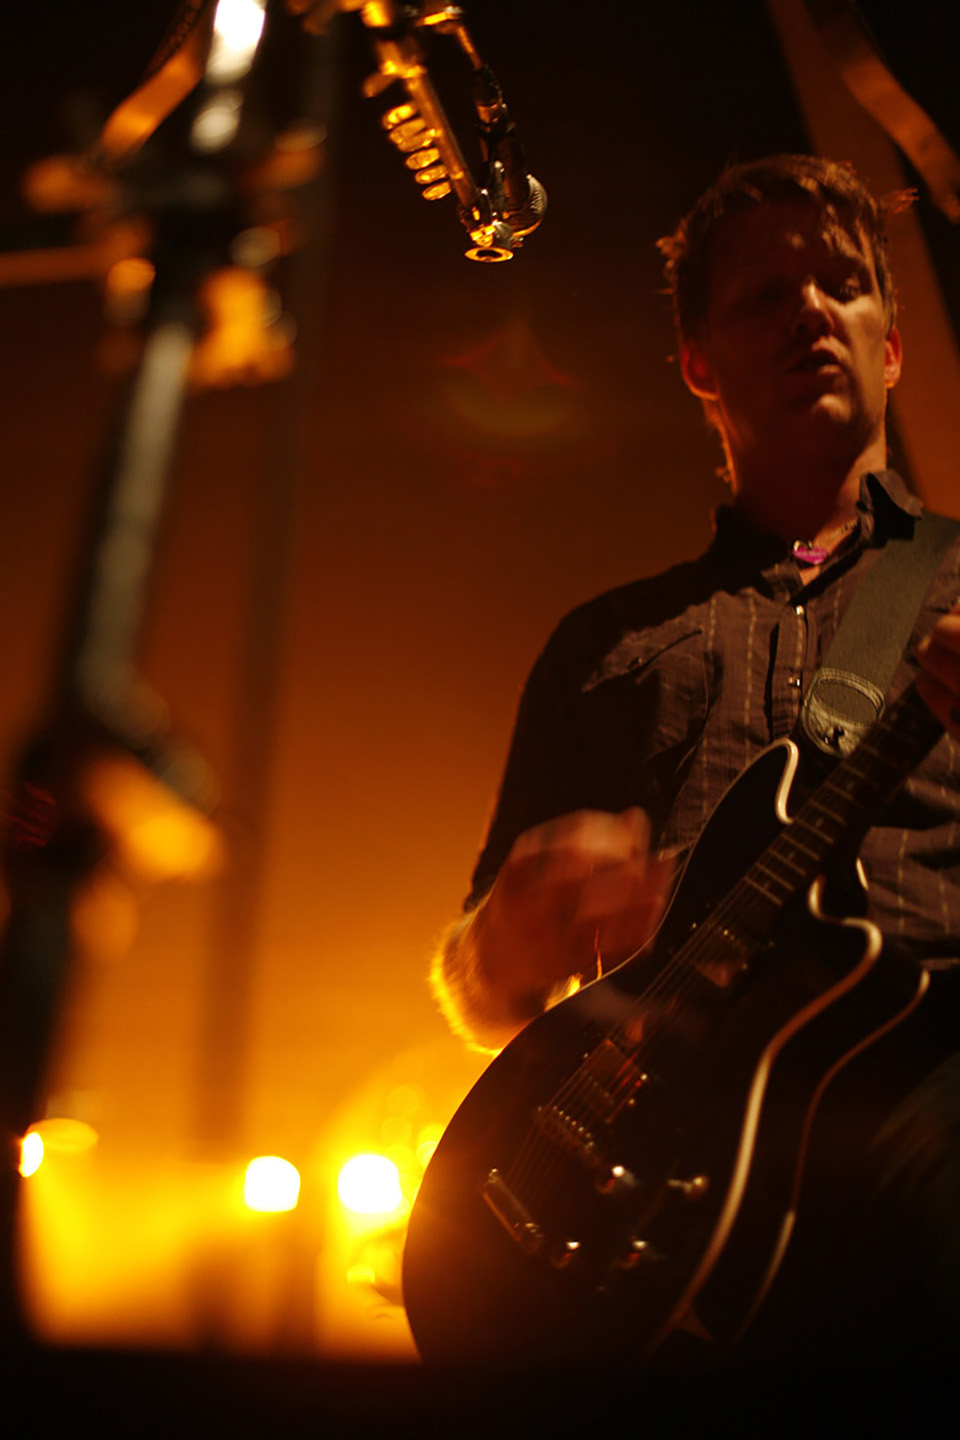 queens of the stone age - oslo spektrum